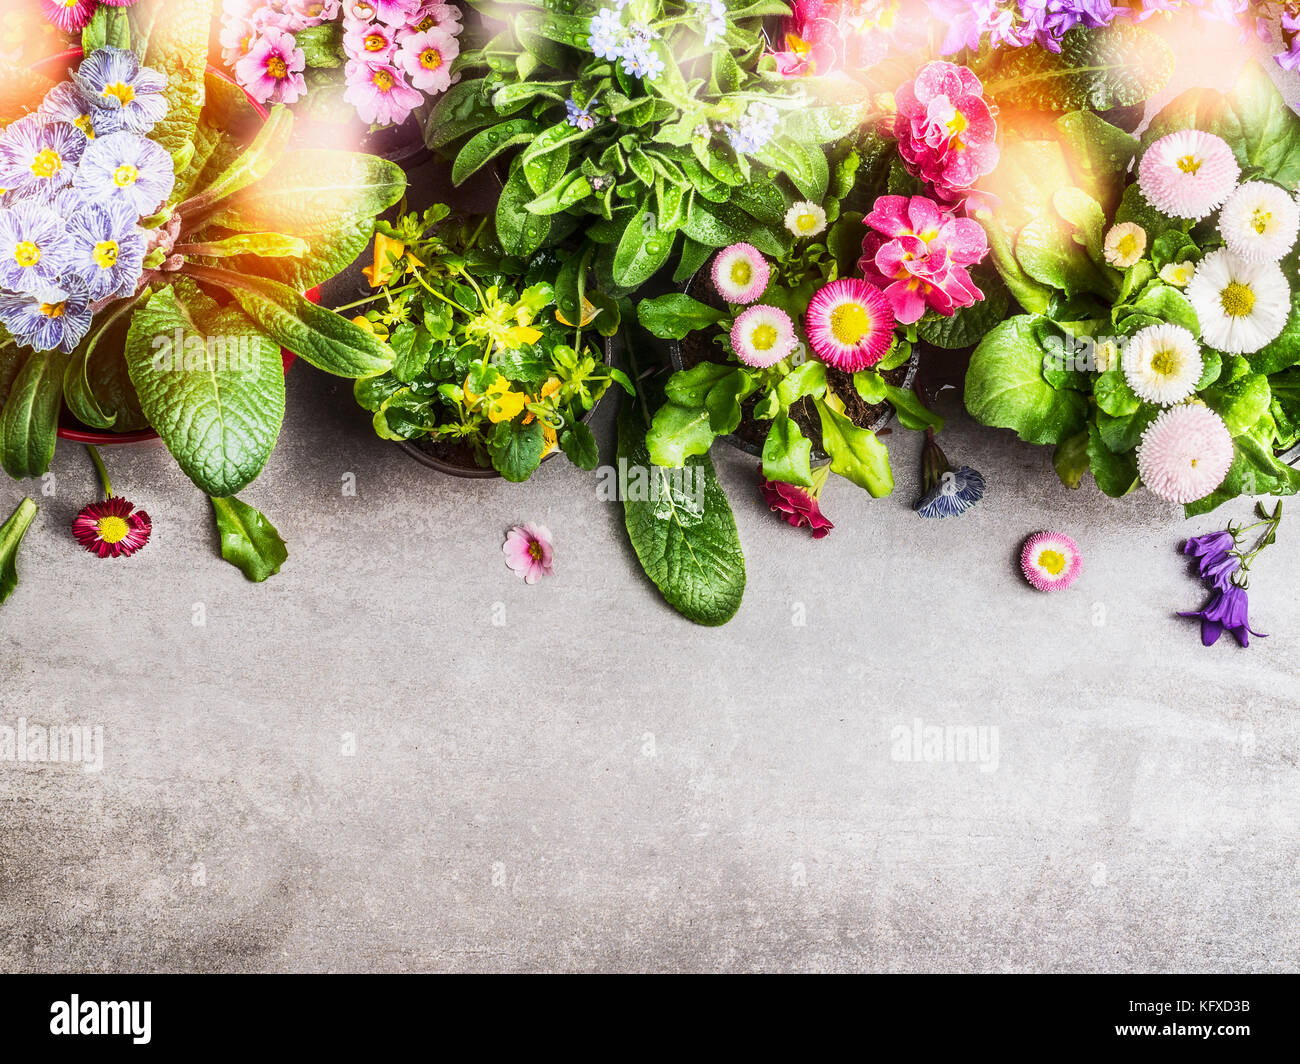 Various colorful spring or summer garden flowers with